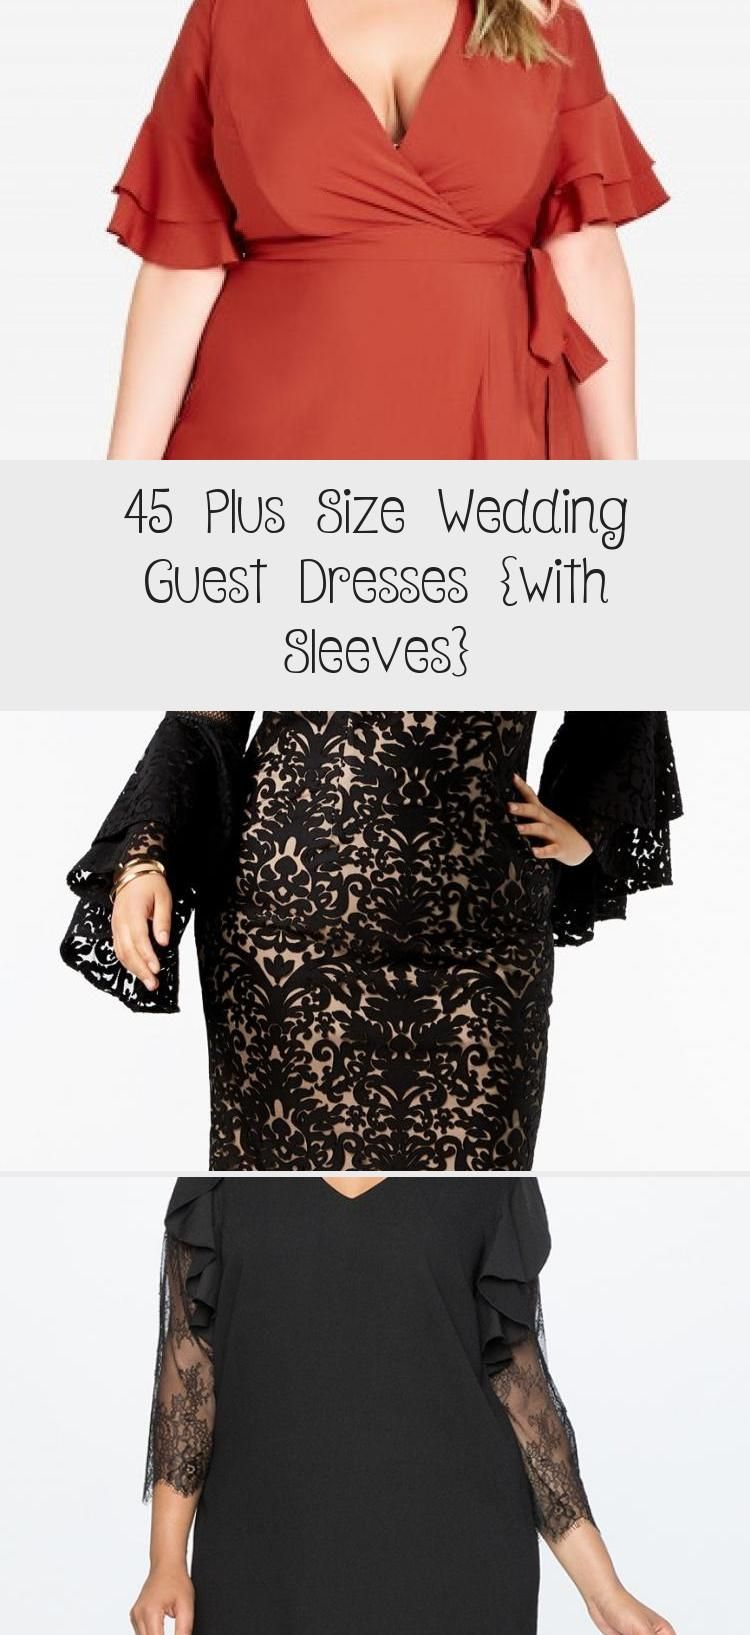 How To Be Black Tie Appropriate With Adrianna Papell Zappos Black Tie Wedding Guest Dress Fall Black Tie Wedding Guests Black Tie Wedding Guest Dress [ 5184 x 3456 Pixel ]